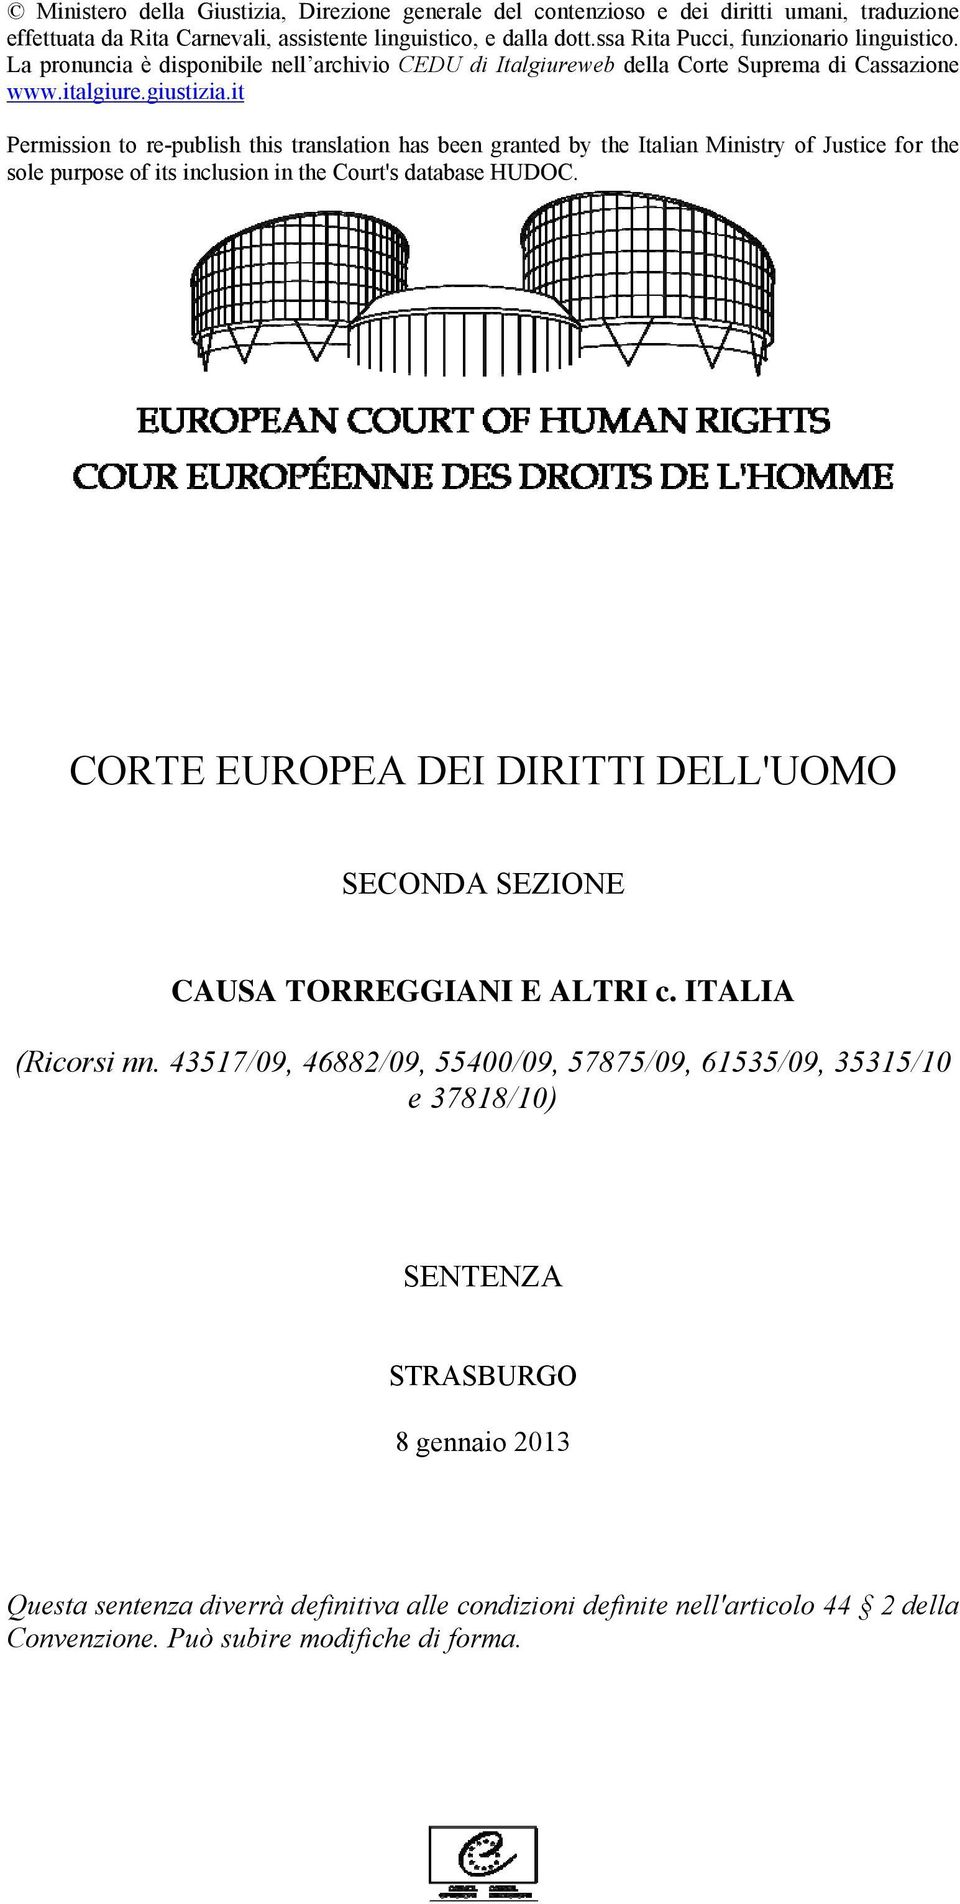 it Permission to re-publish this translation has been granted by the Italian Ministry of Justice for the sole purpose of its inclusion in the Court's database HUDOC.